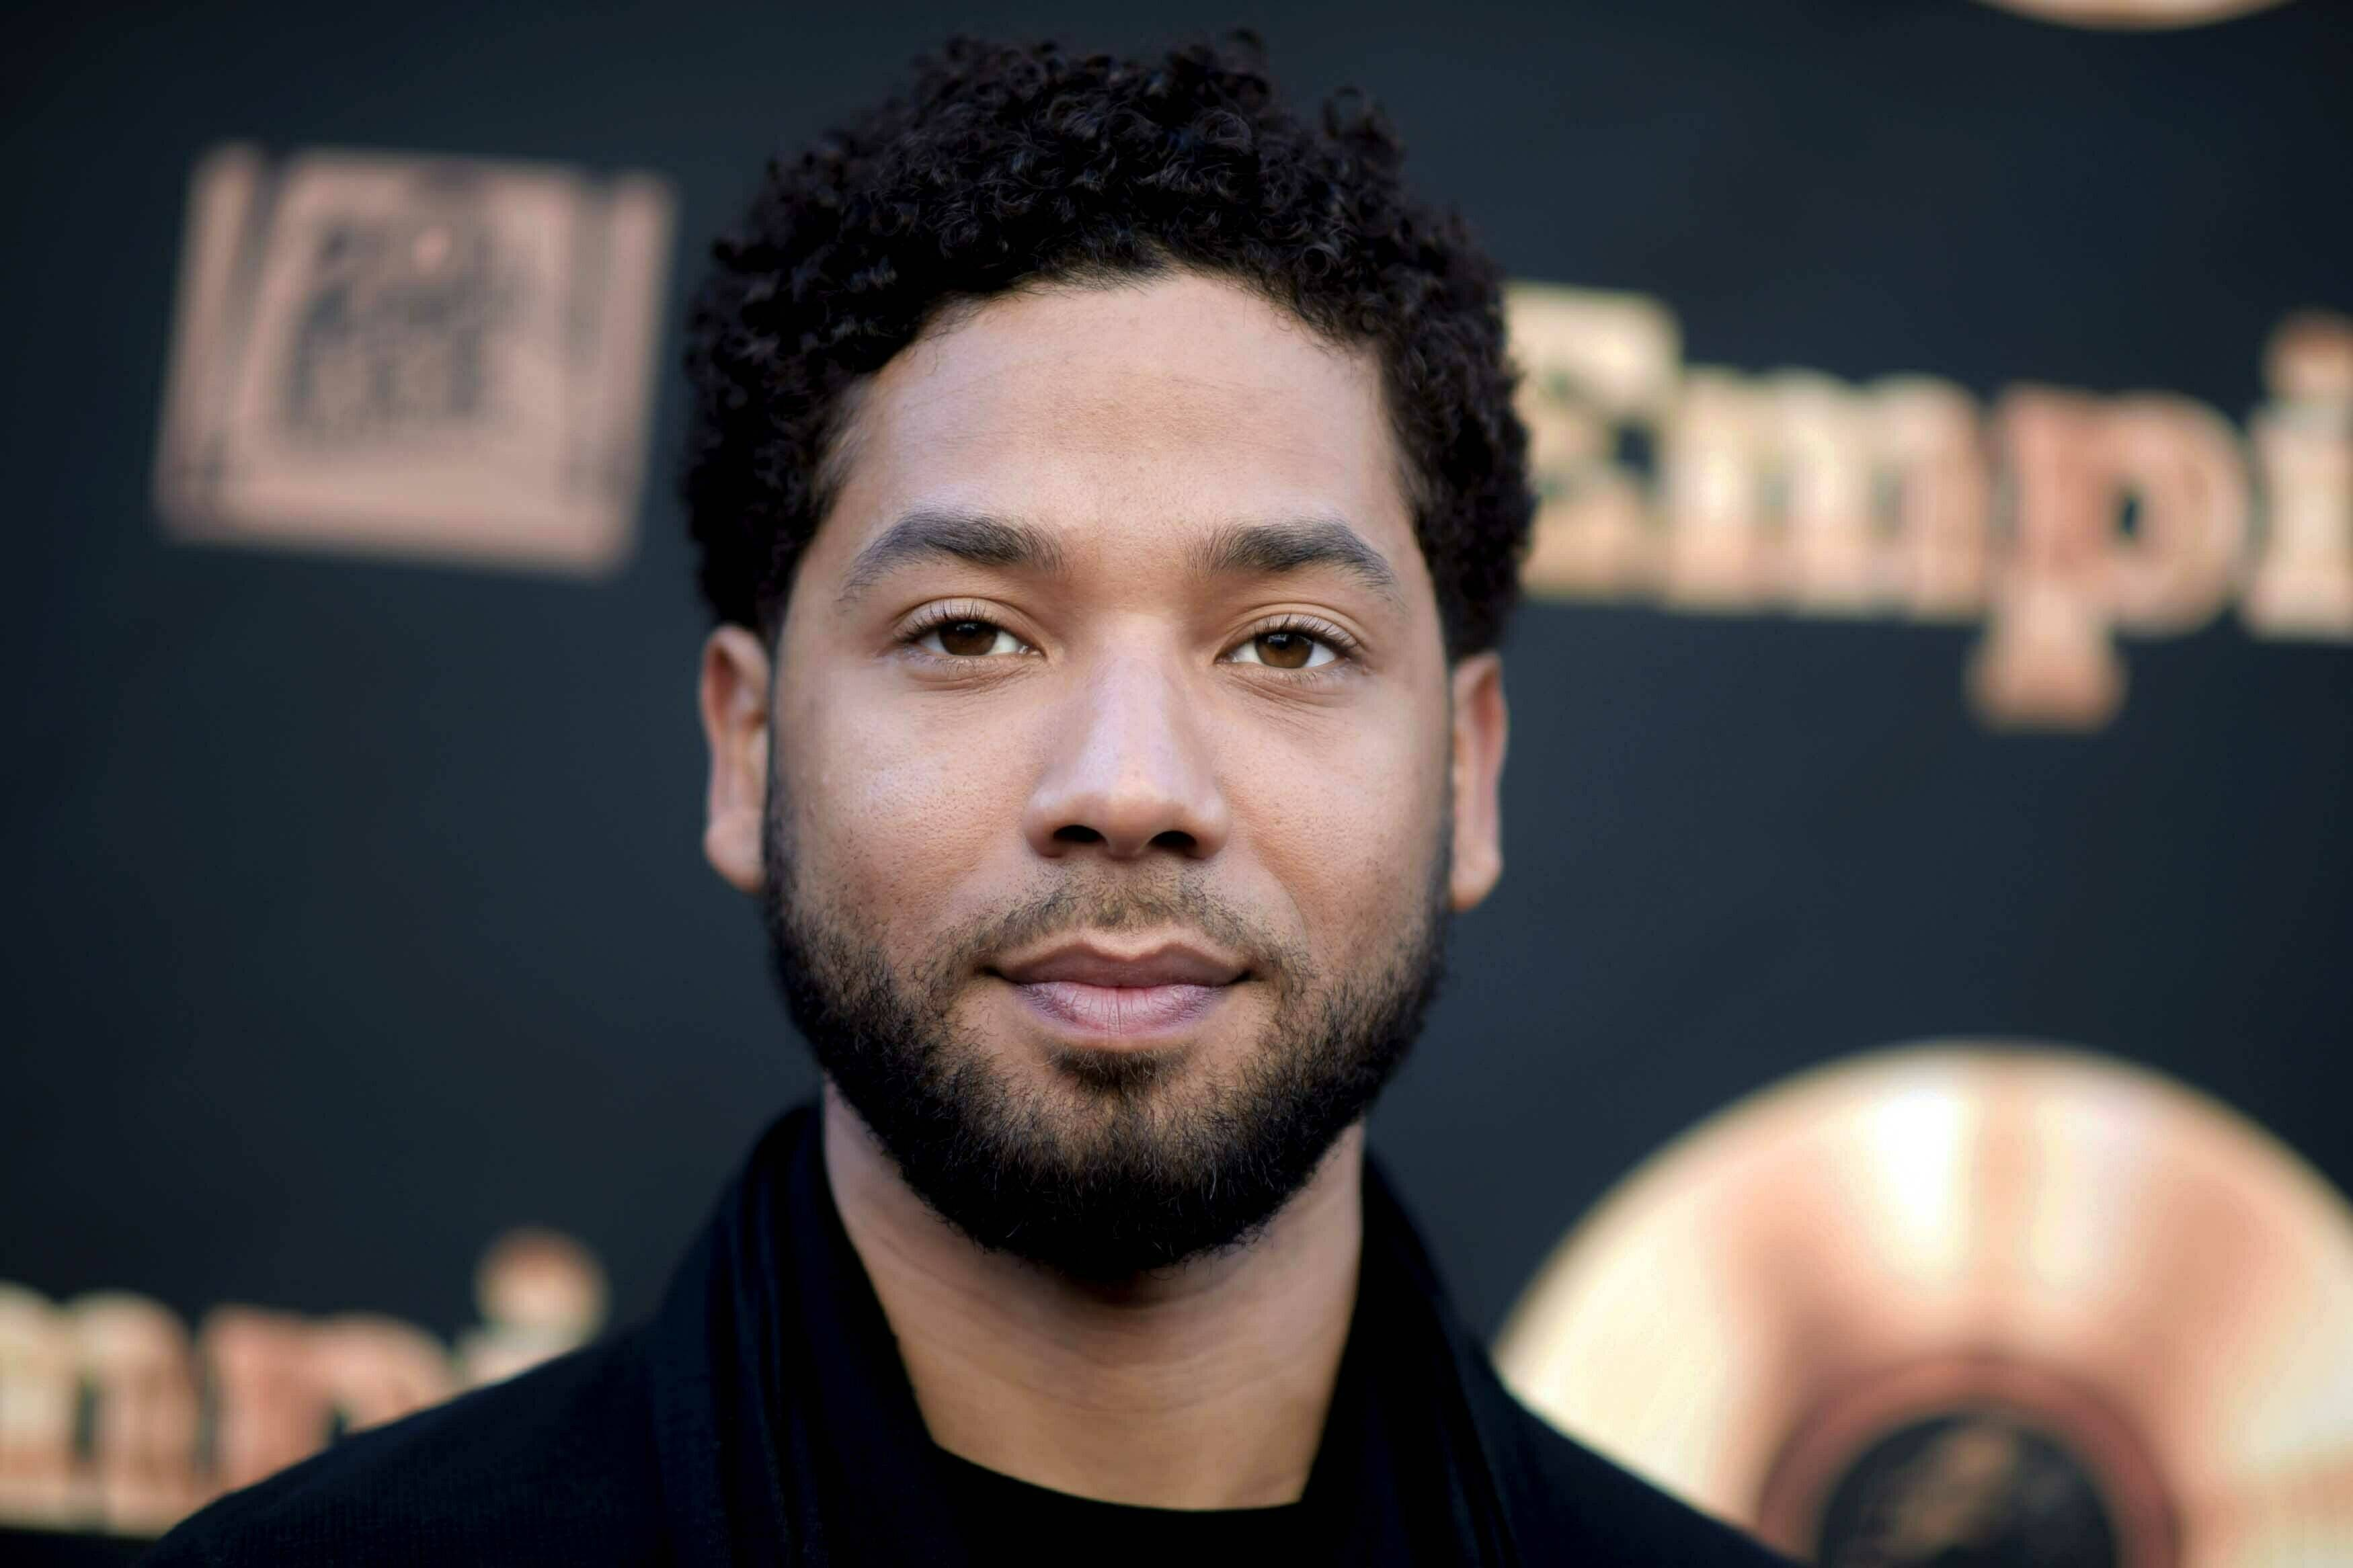 Facts Matter: No truth to claim Smollett was offered job at CNN